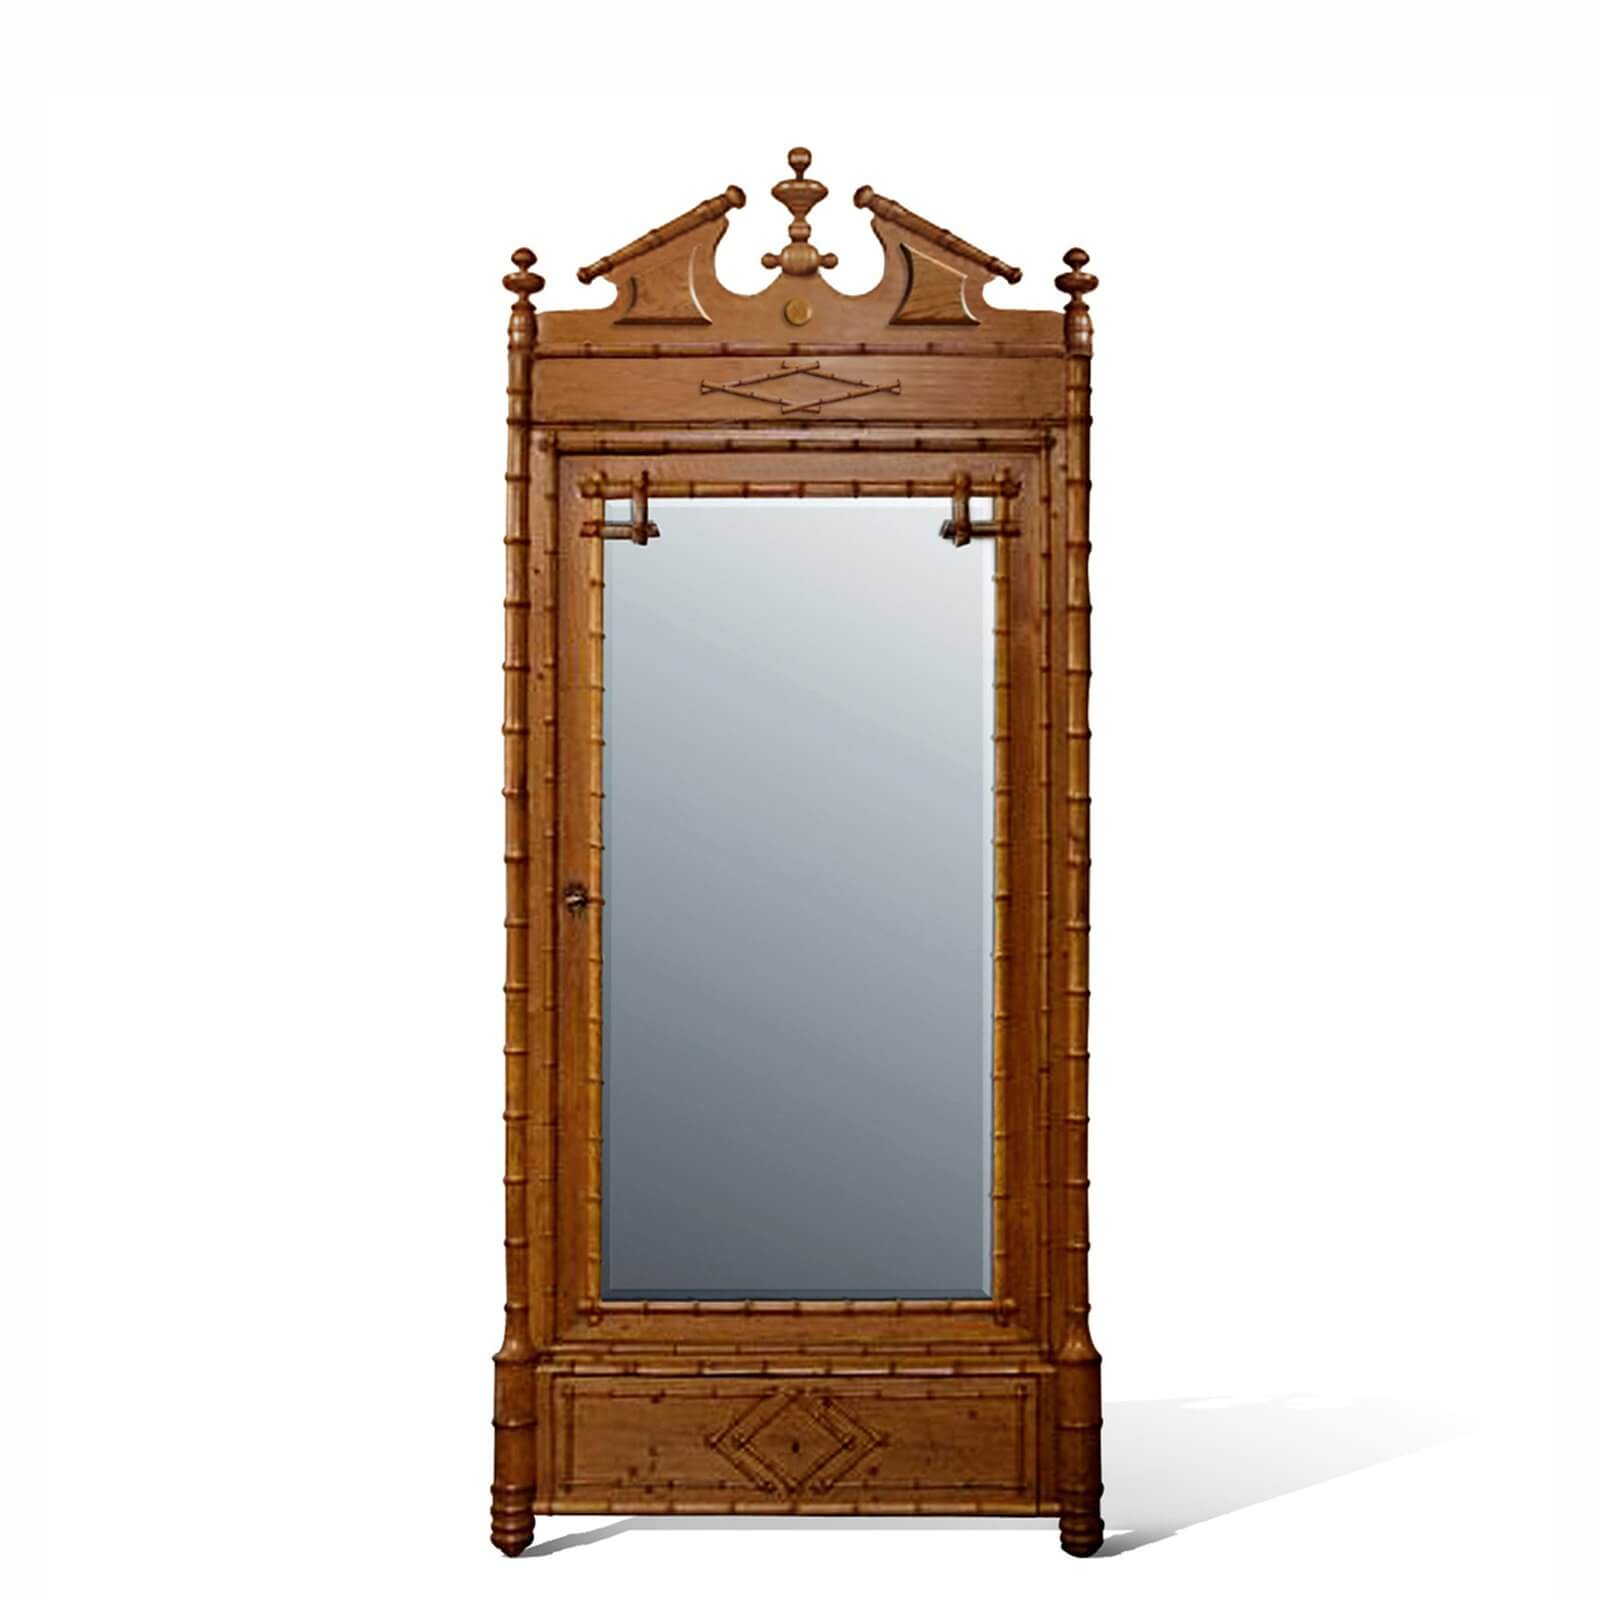 MANDALAY ARMOIRE - STUART MEMBERY HOME COLLECTION